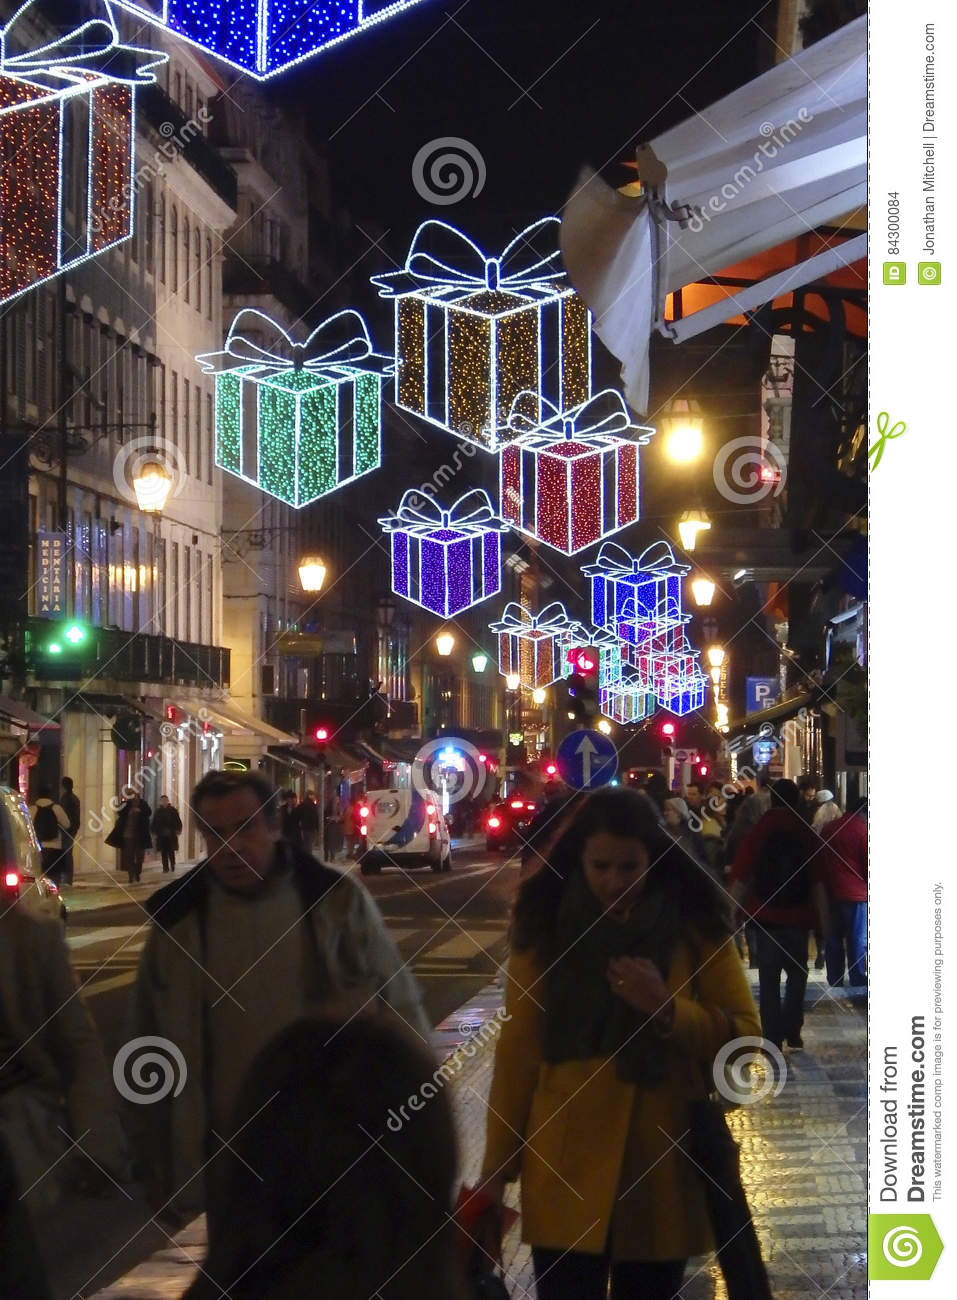 Weihnachtsessen Portugal.Christmas In Lisbon Portugal Editorial Stock Image Image Of Light